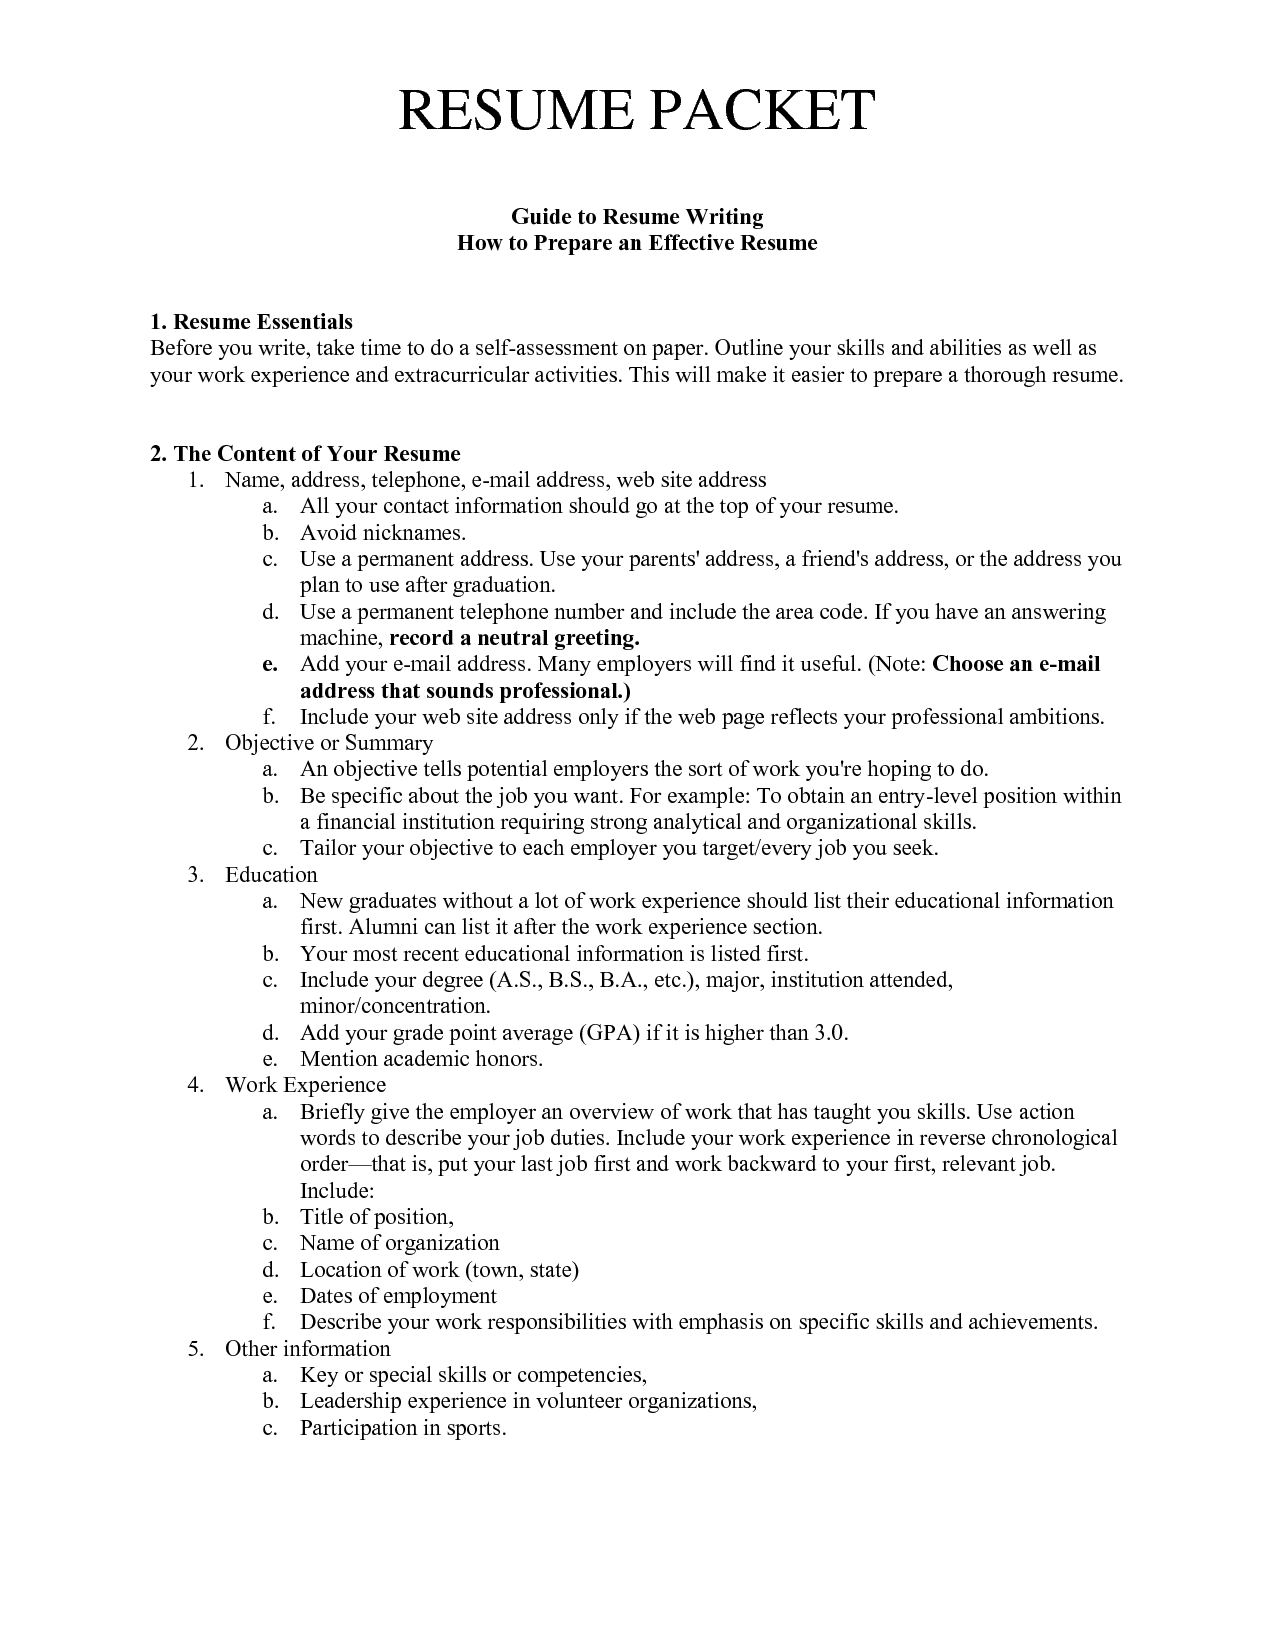 Guide To Resume Writing How To Prepare An Effective